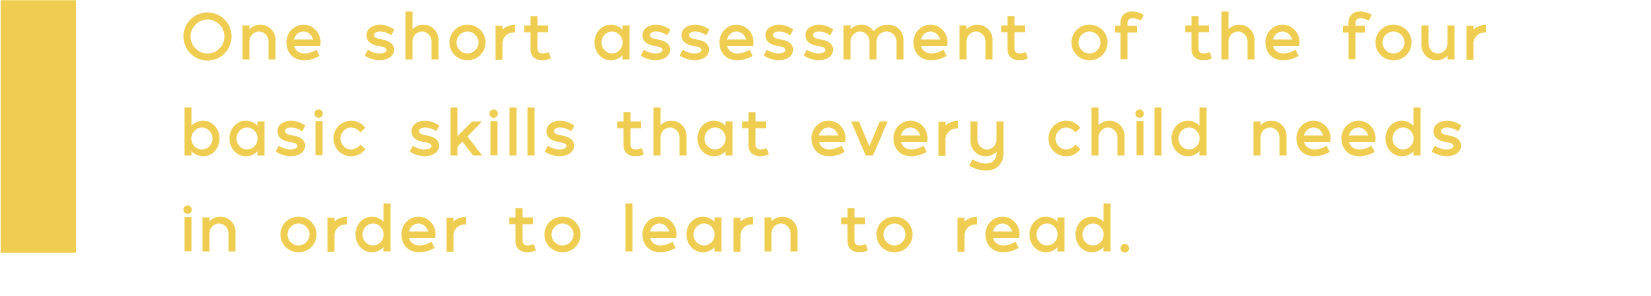 Services-Family-FamAssess-Highlights_EarlyReader.png